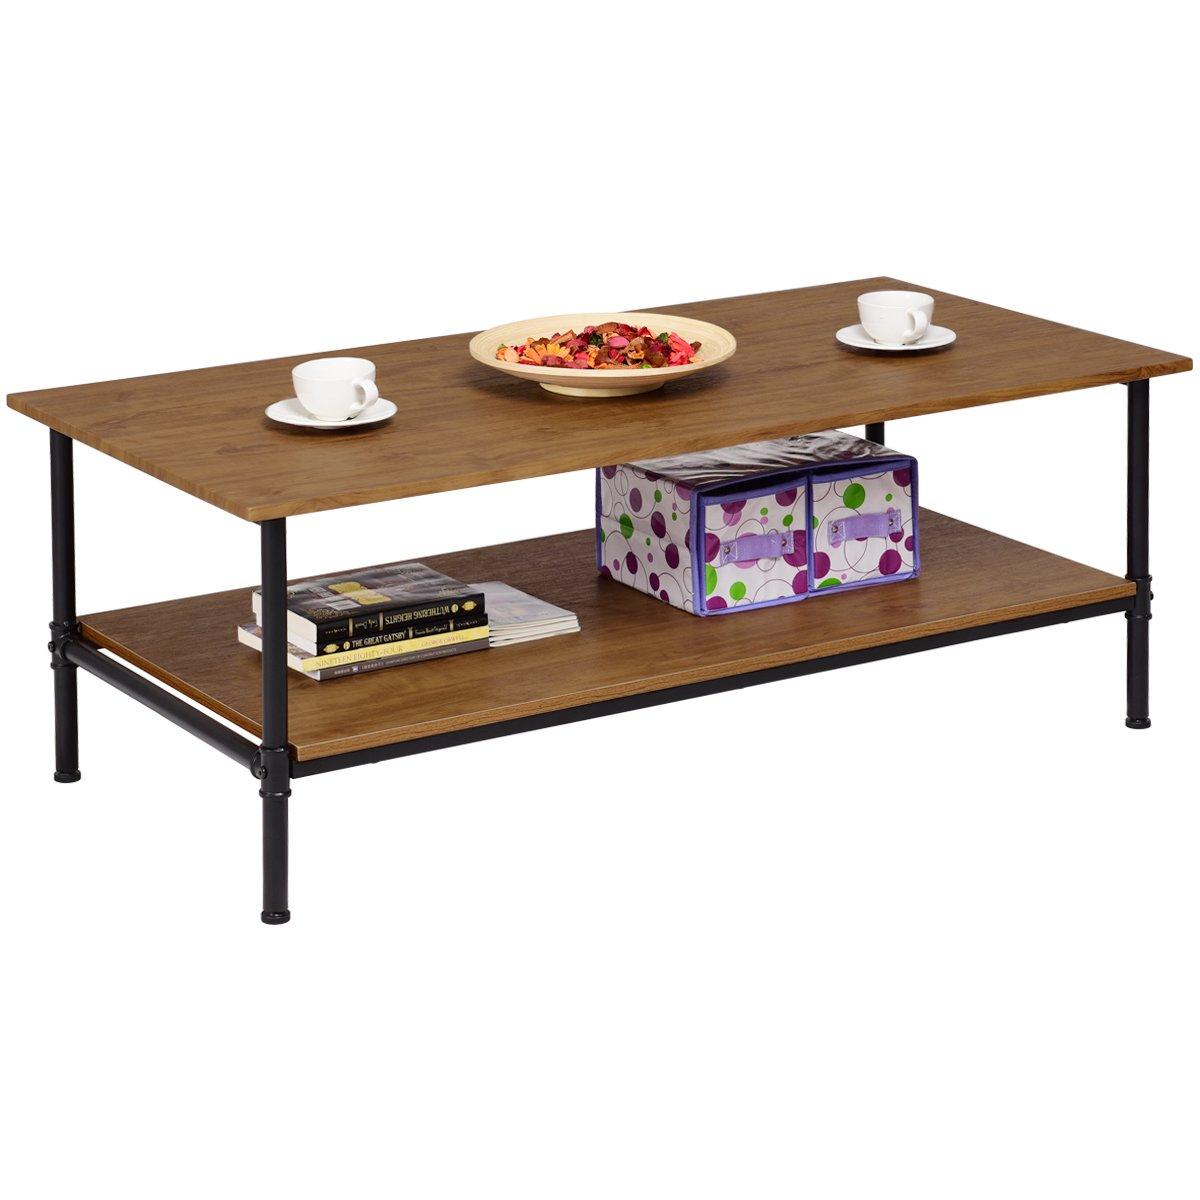 Giantex Coffee Table Decor with Storage Metal Solid Frame, Natural Wood Decorative Line Pattern, 360 Degree Flexible Feet, for Living Room Bedroom Accent Cocktail Sofa Side Table